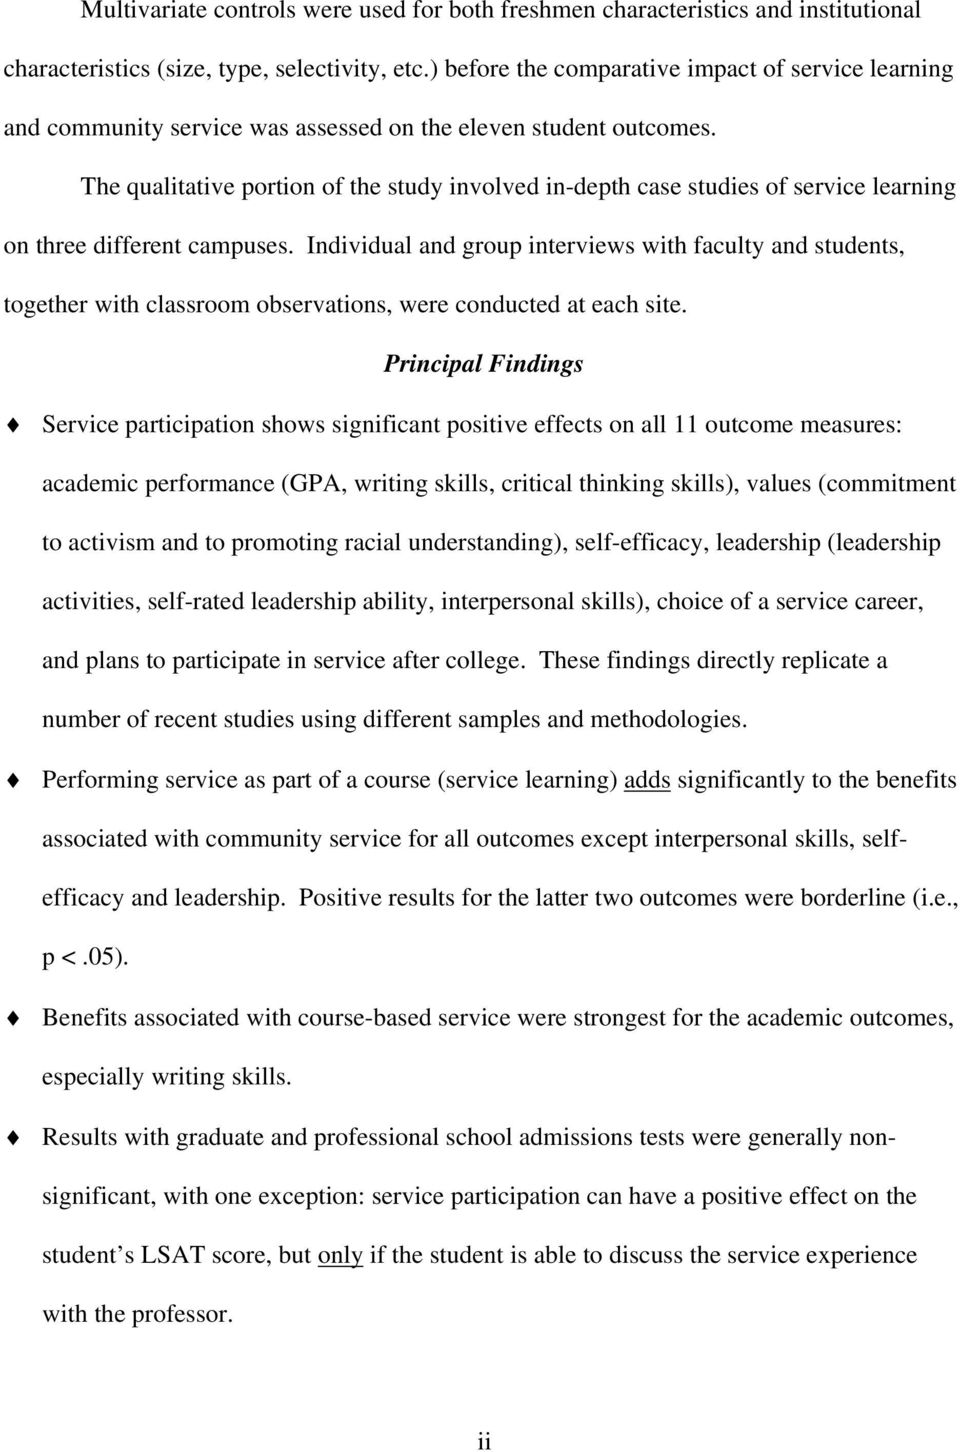 The qualitative portion of the study involved in-depth case studies of service learning on three different campuses.